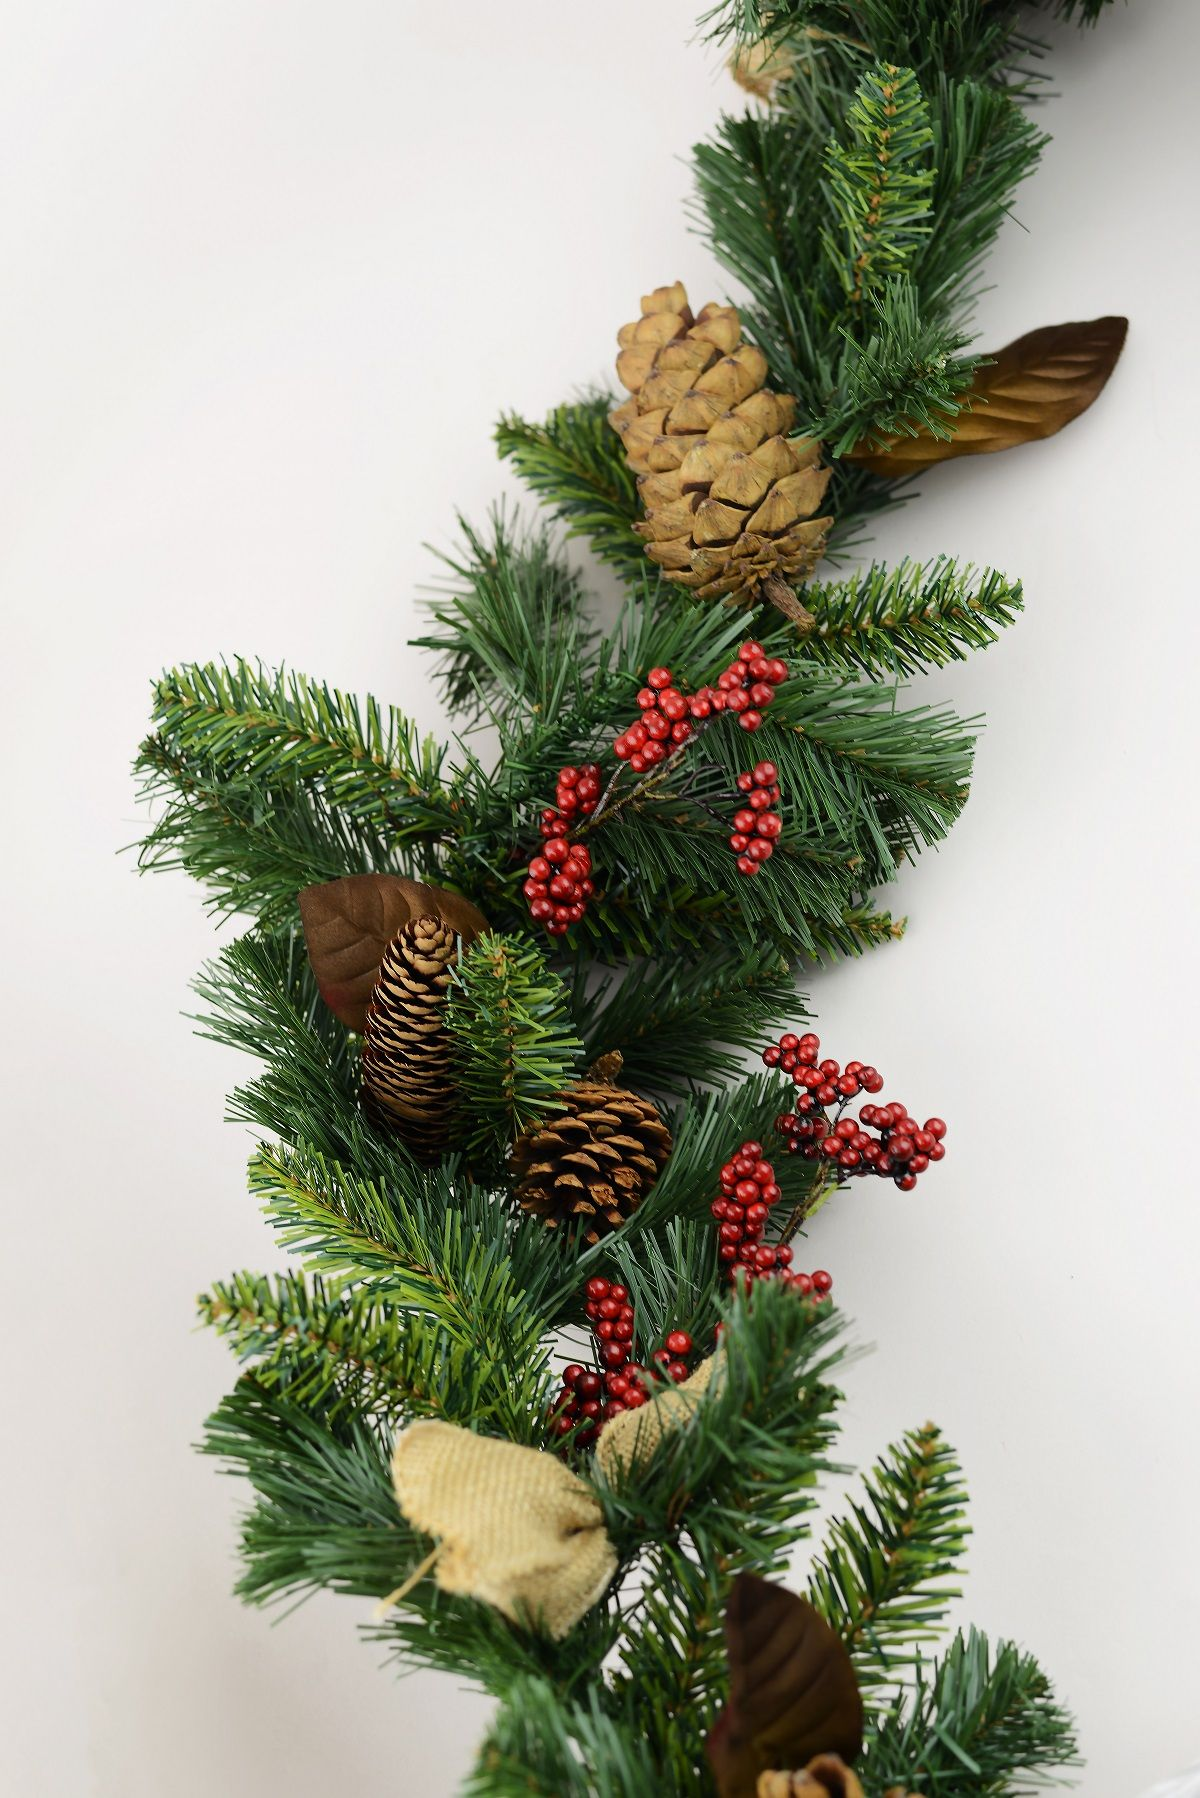 Pine Cone Berry Christmas Garland With Burlap Bows 6ft